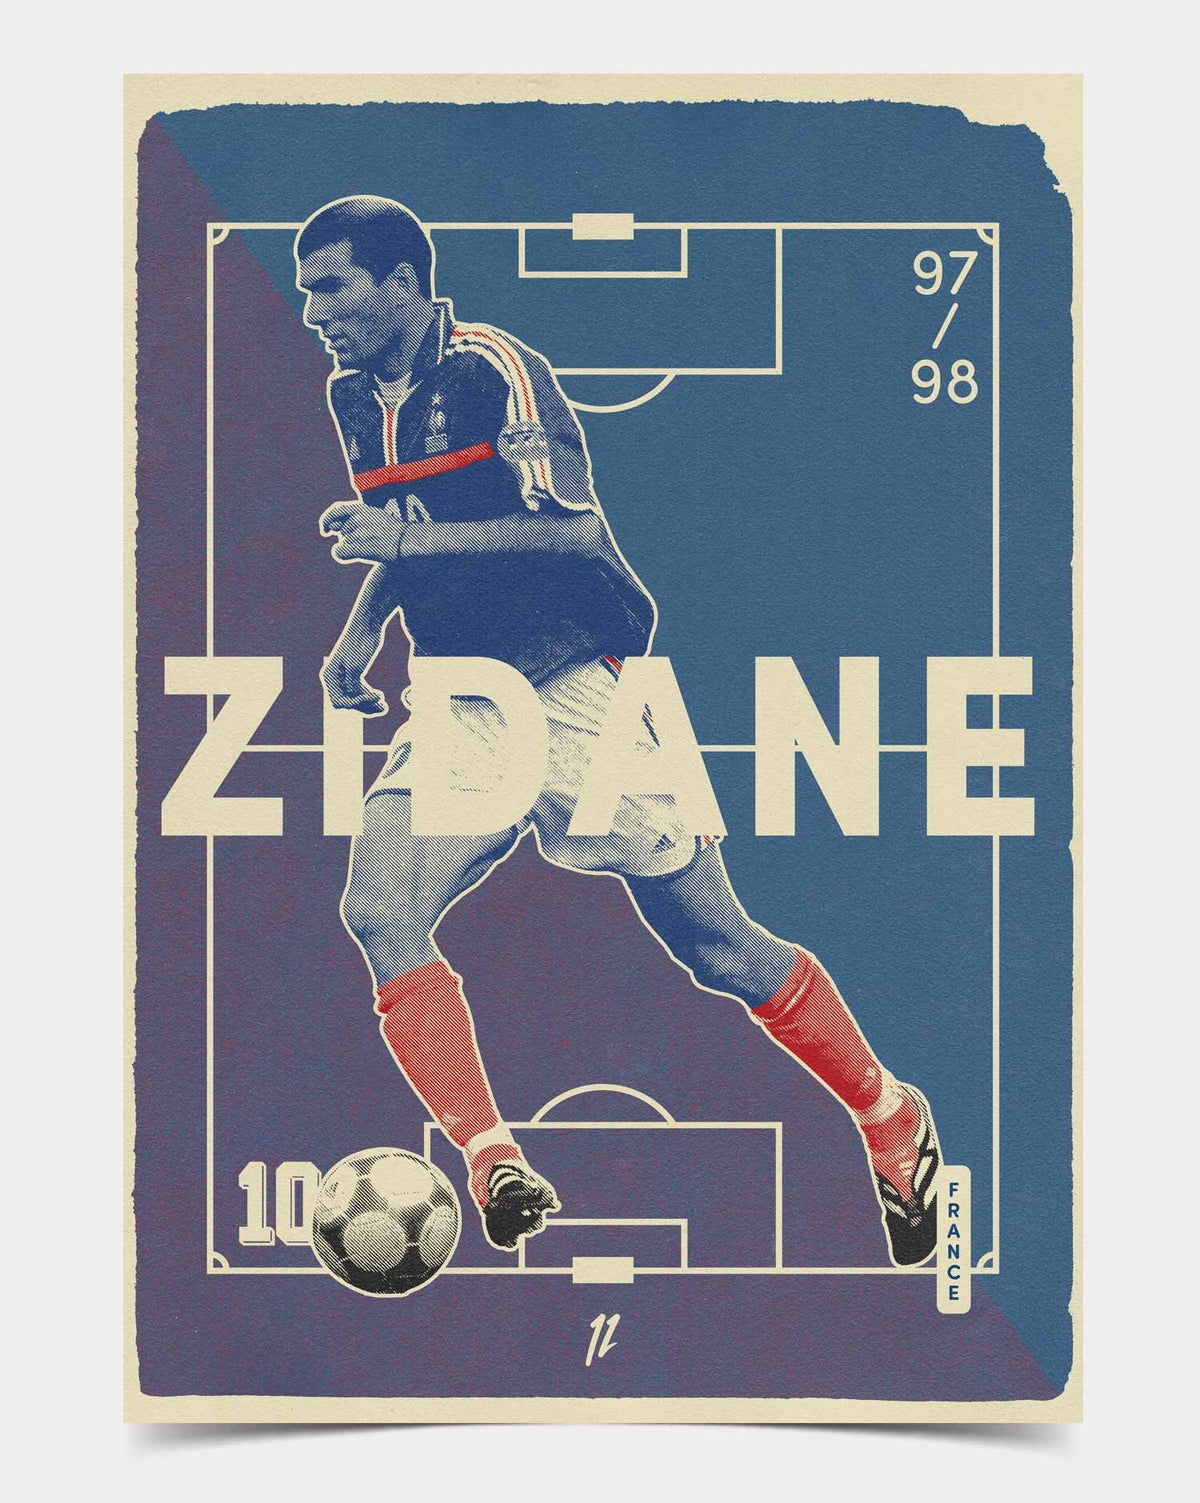 Image of Zidane Retro